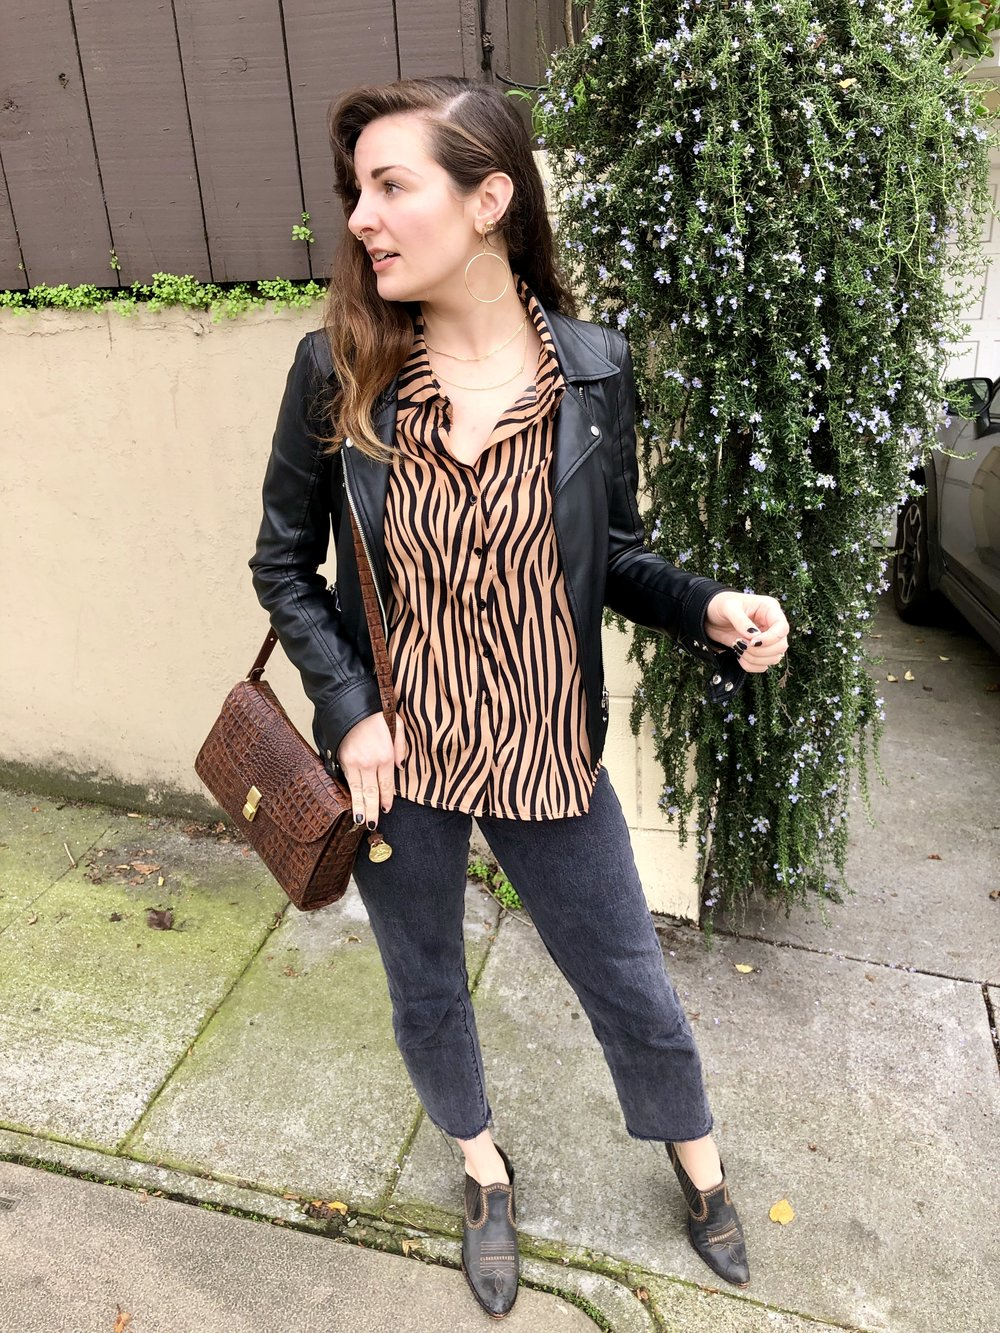 Tiger Stripe Amazon Fashion blouse